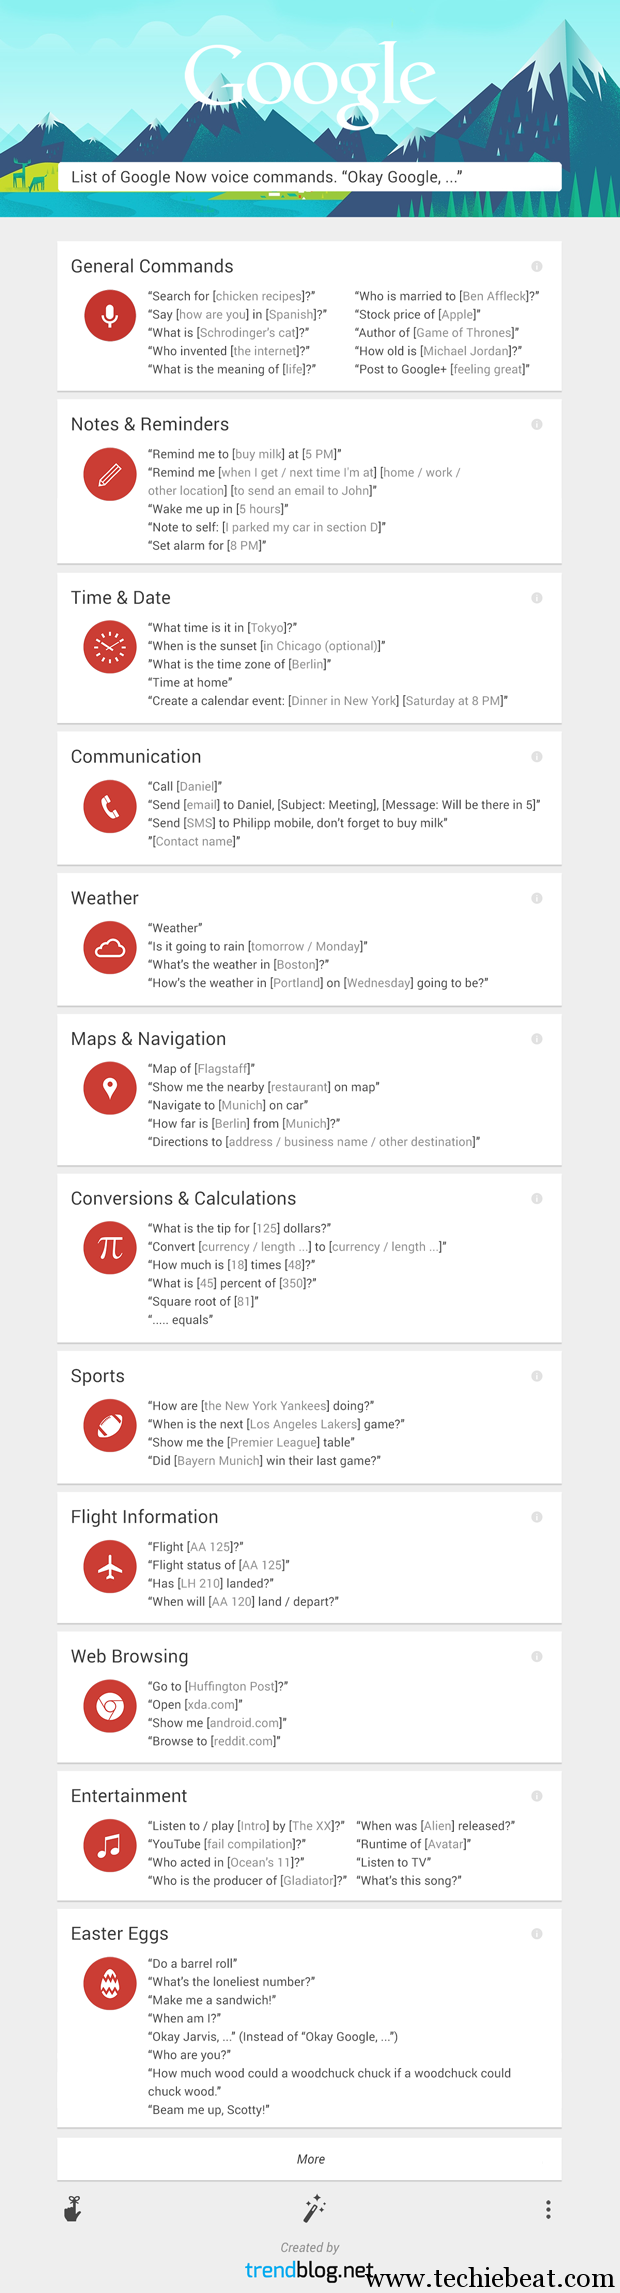 List of Google Now Voice Commans